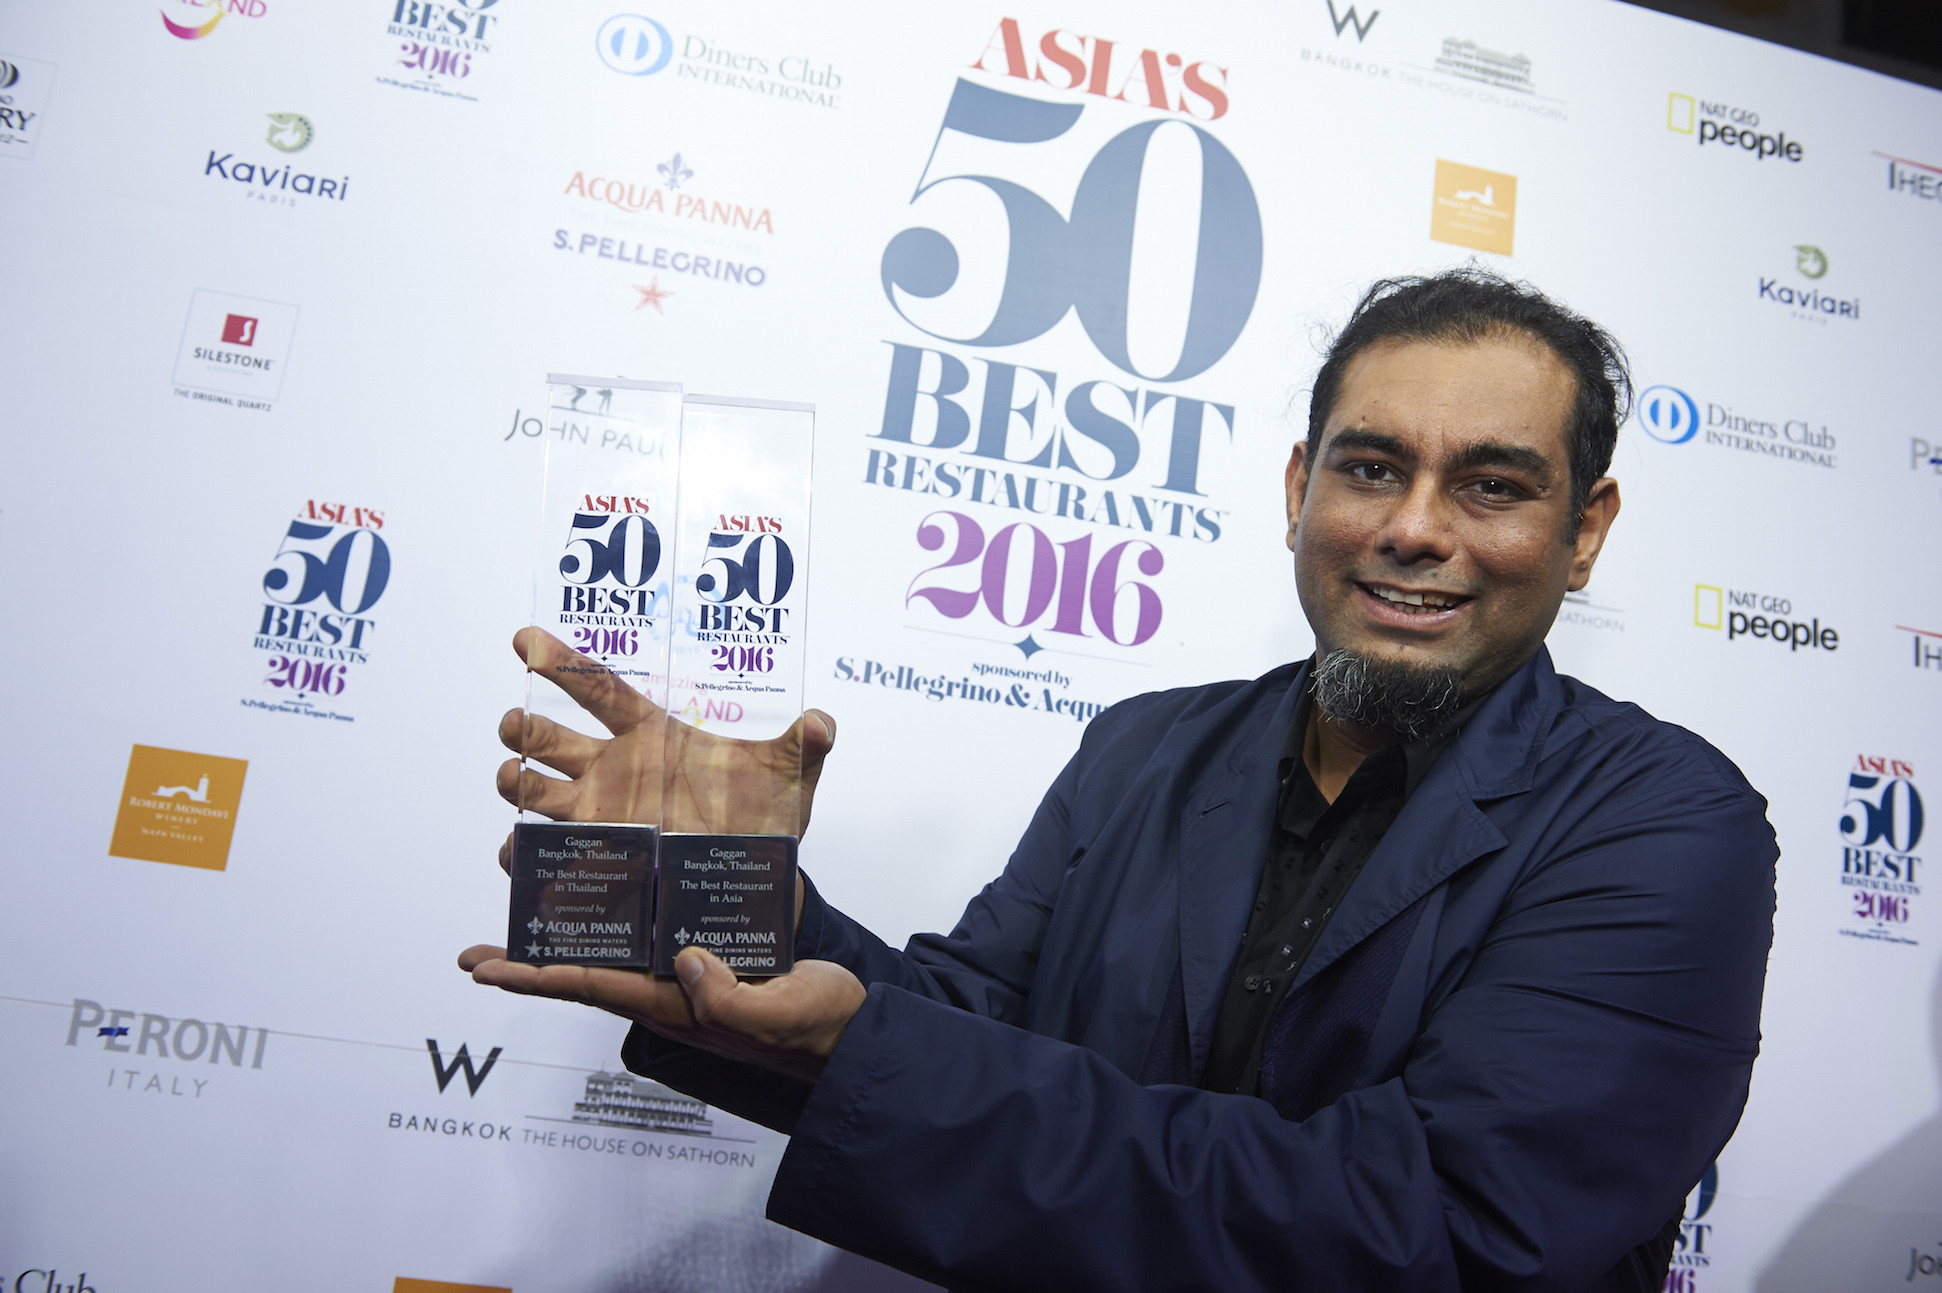 Image titleAsia's 50 Best Restaurants 2016, sponsored by S.Pellegrino & Acqua Panna